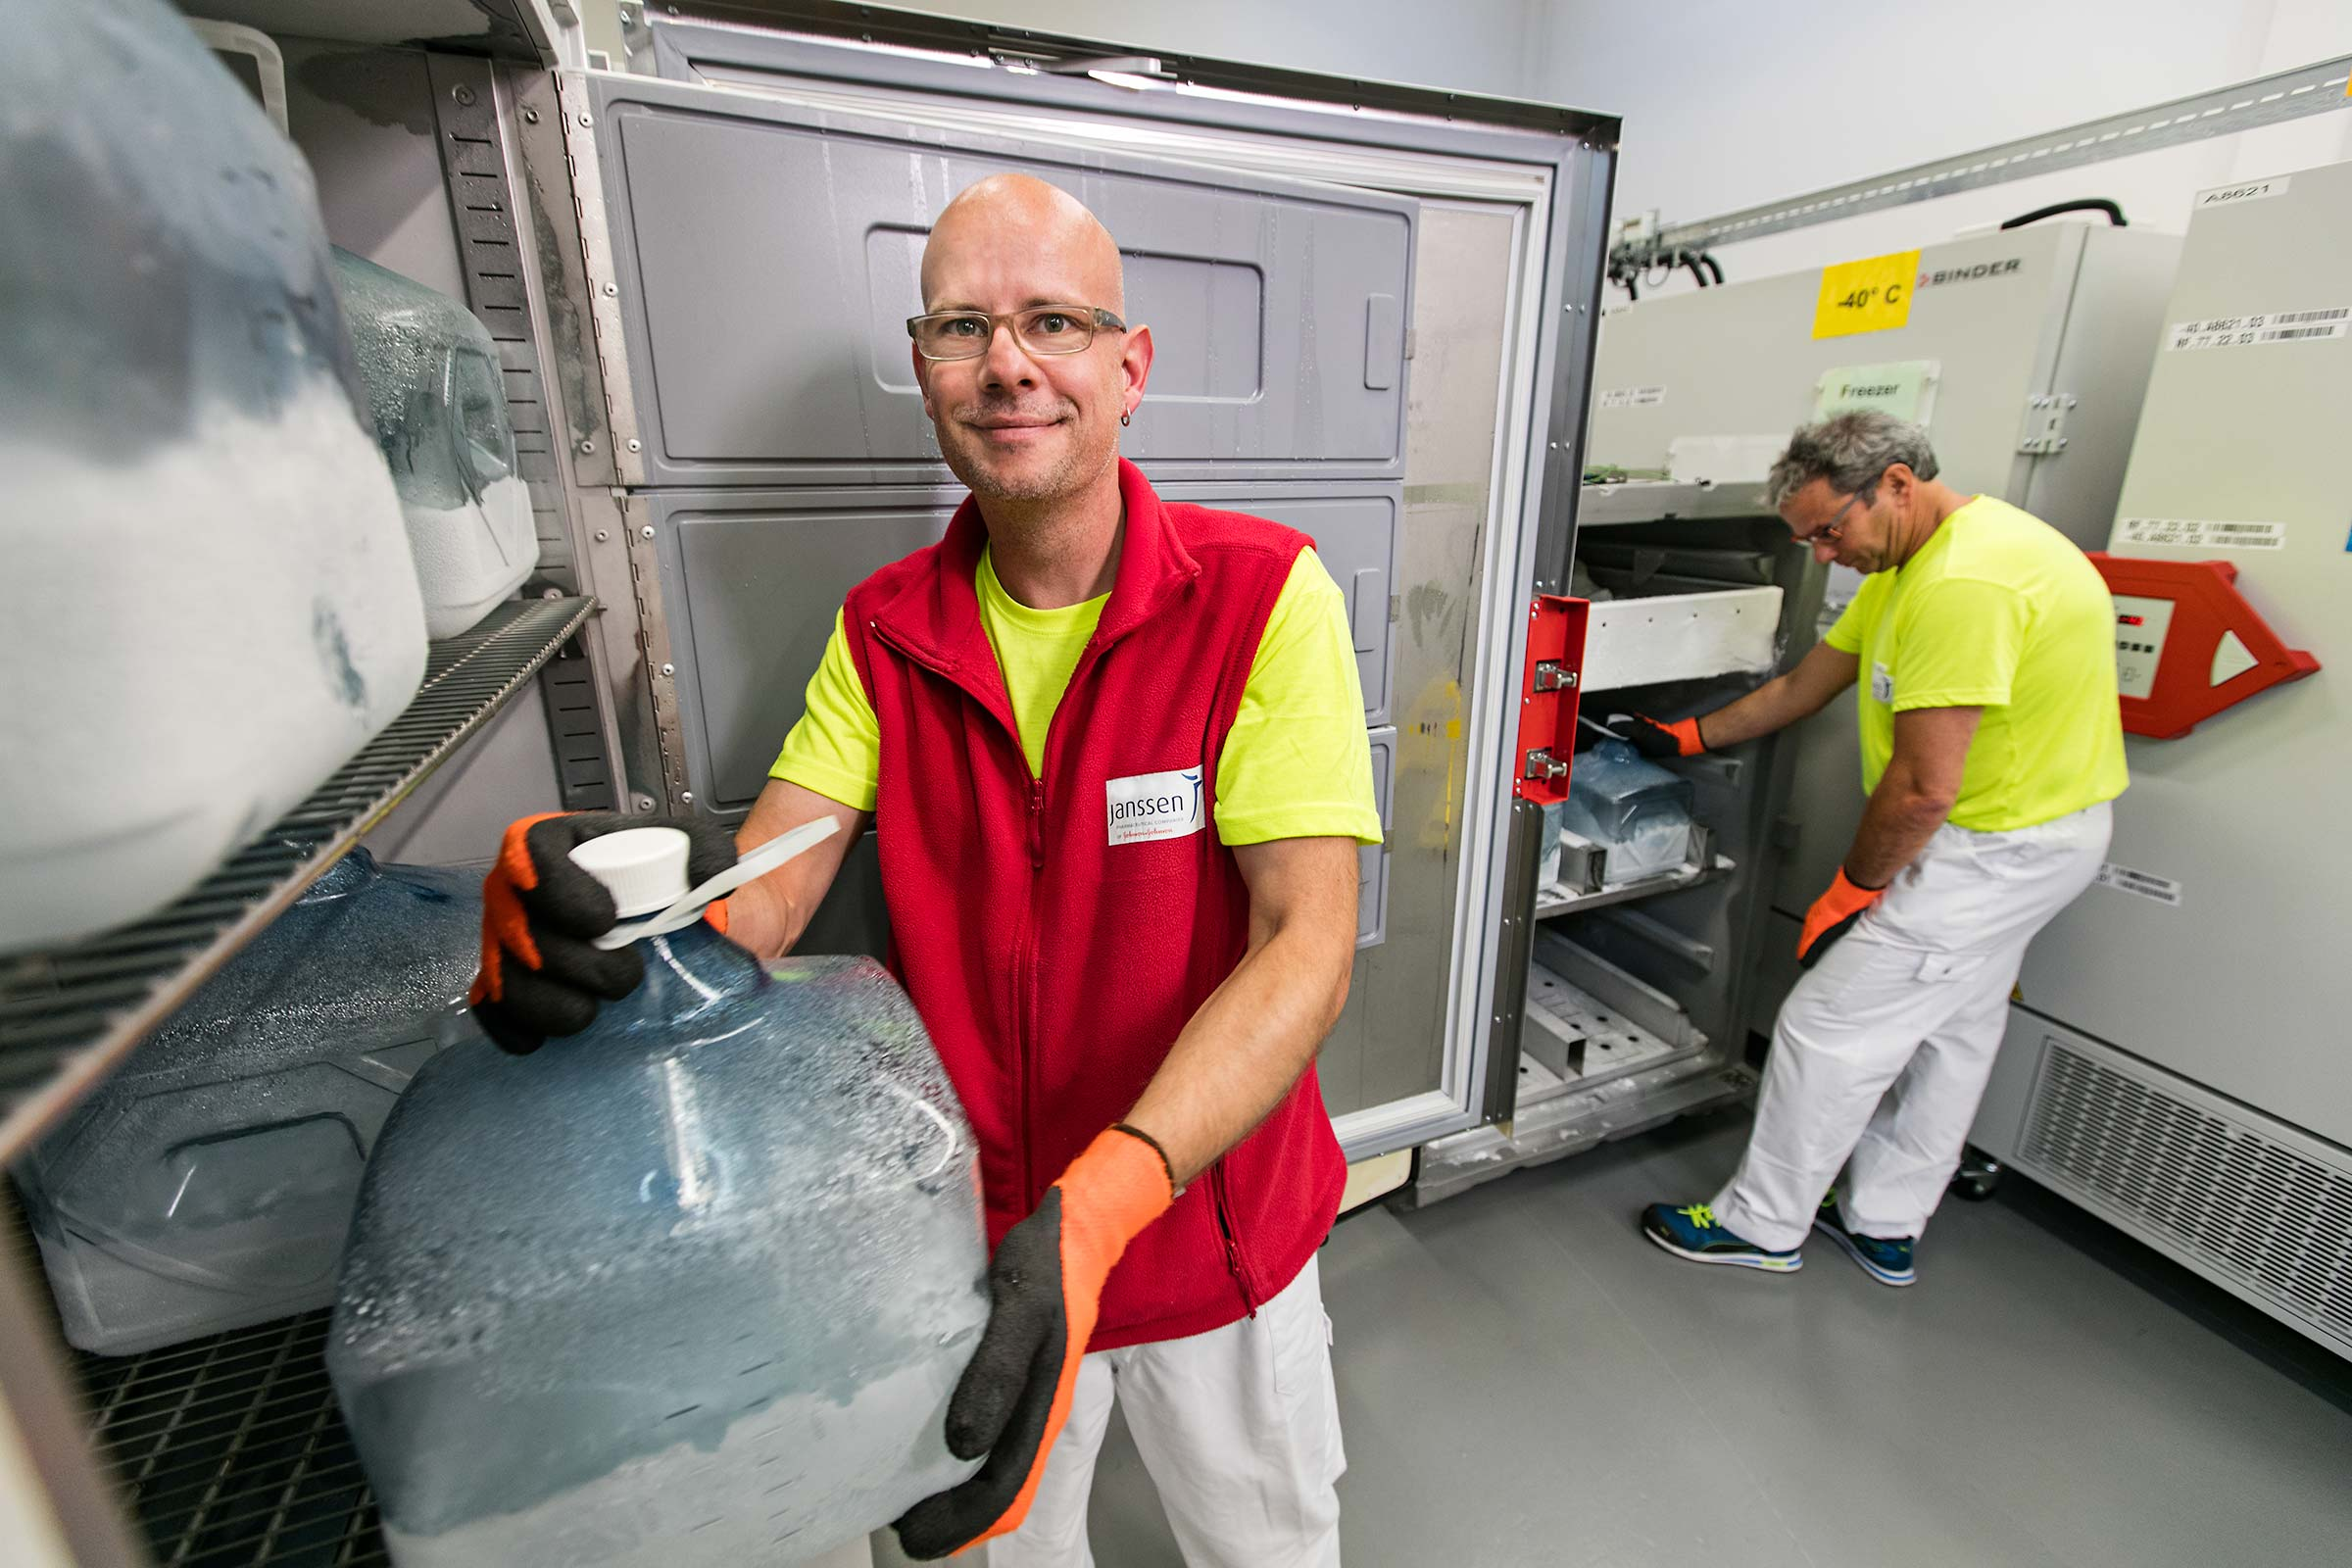 Pharmaceutical manufacturing employees working in freezer in Switzerland